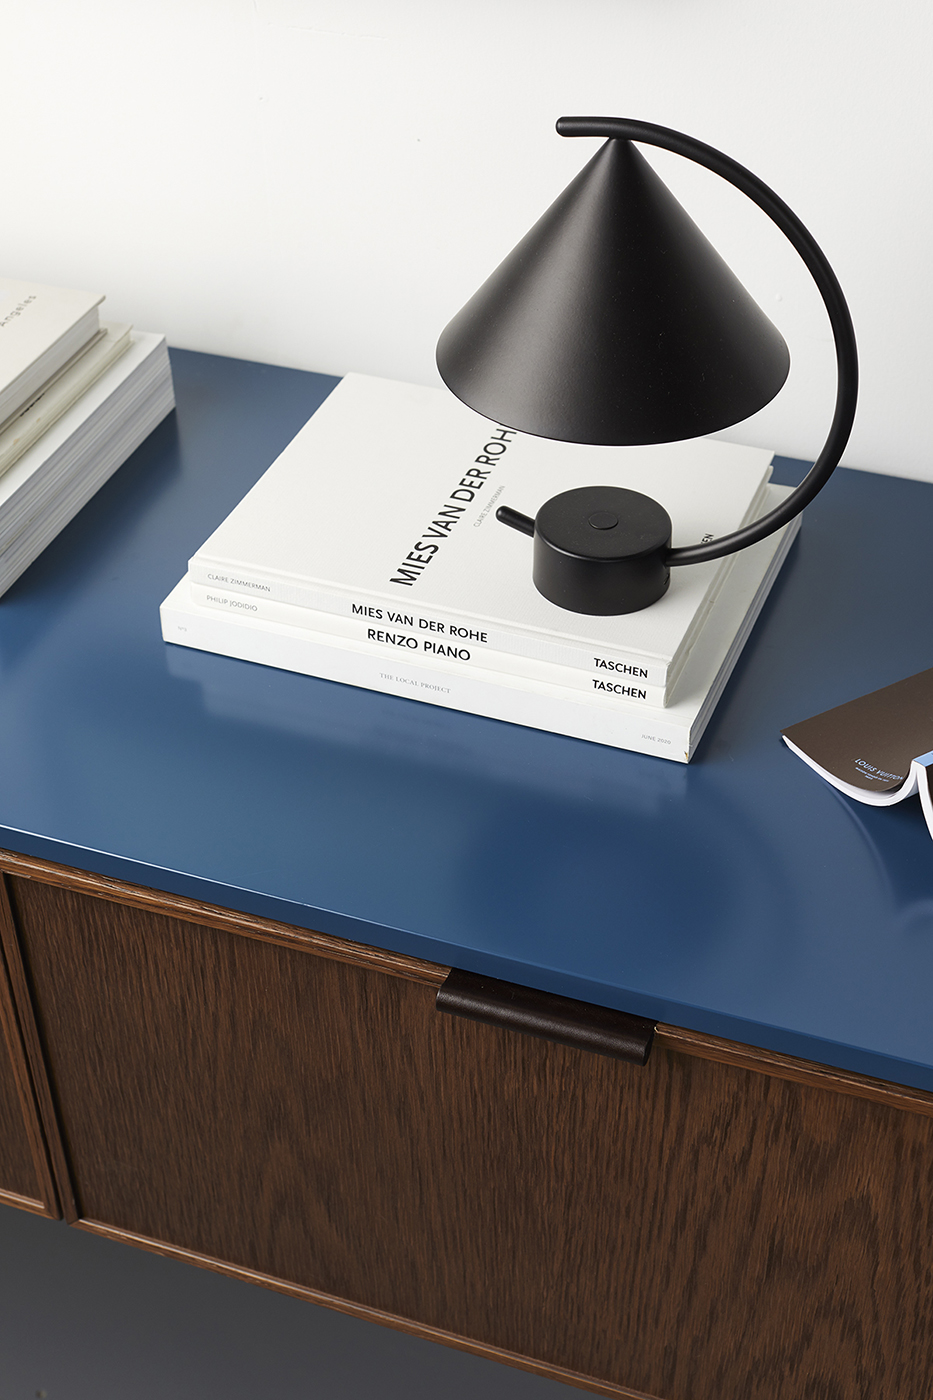 Blue topped wood grain cabinet with black modern hardware made by Ensemble furniture shot by Peter Tarasiuk